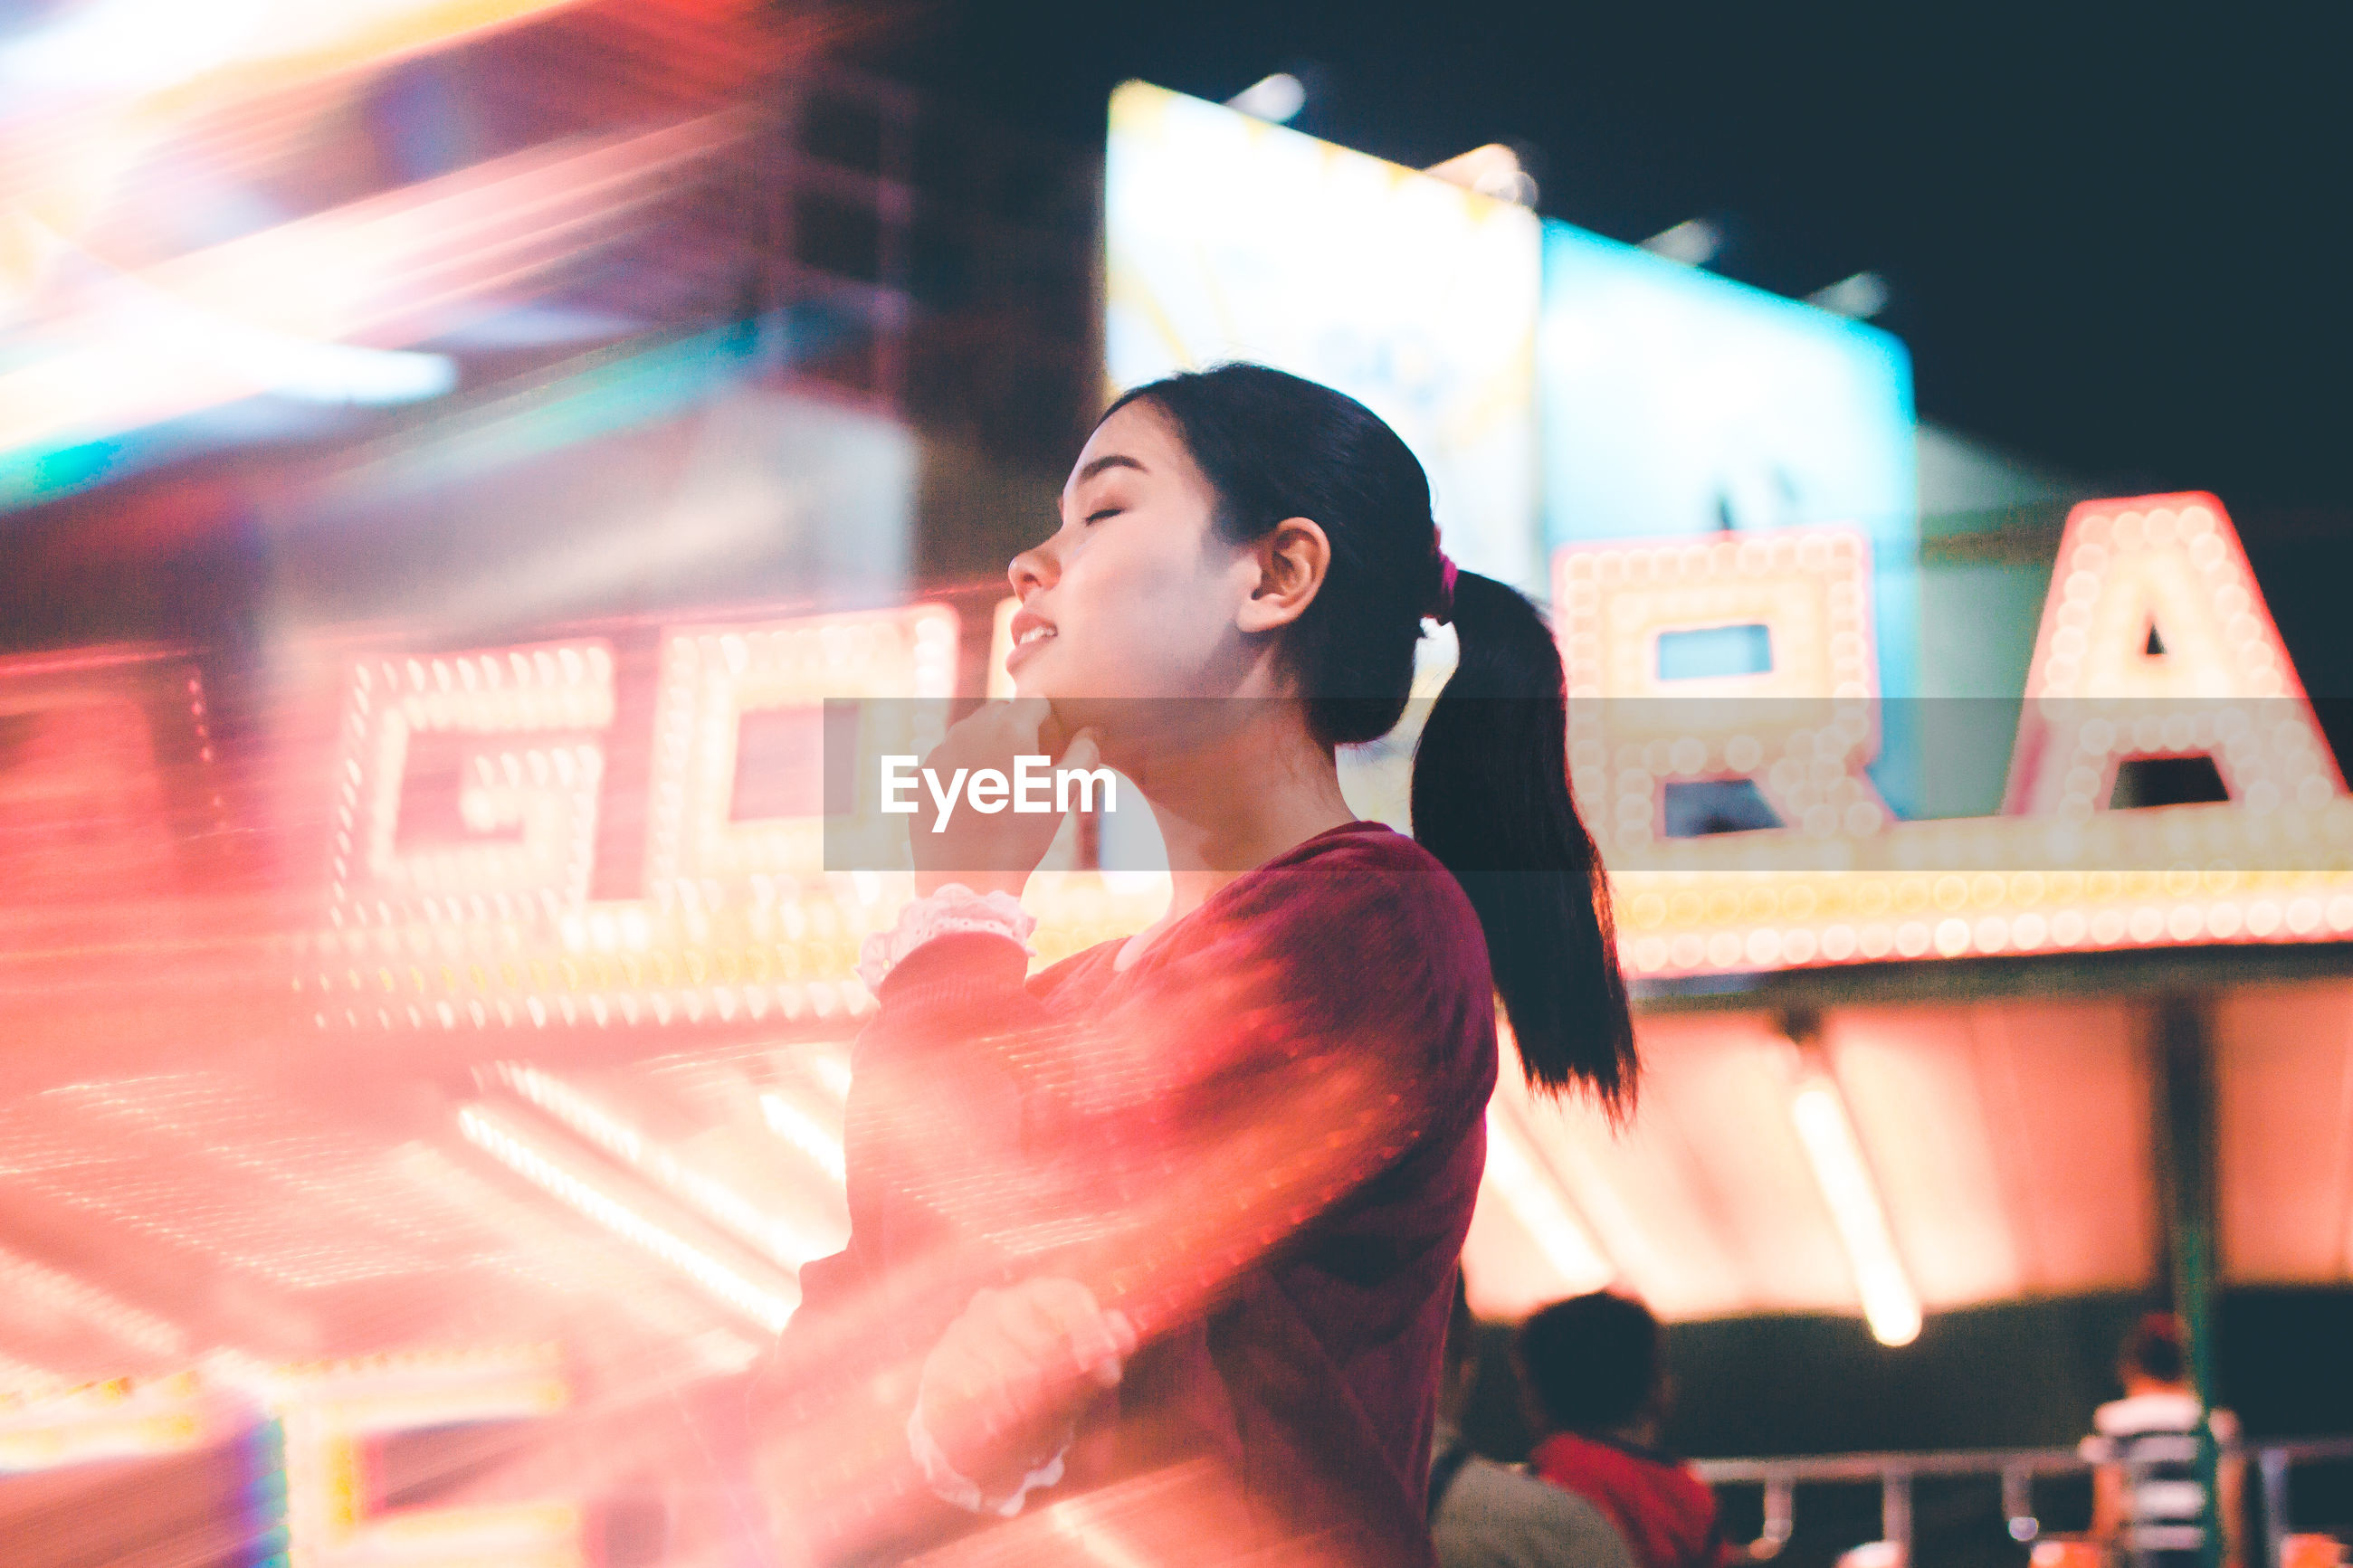 Low angle view of young woman in illuminated street at night